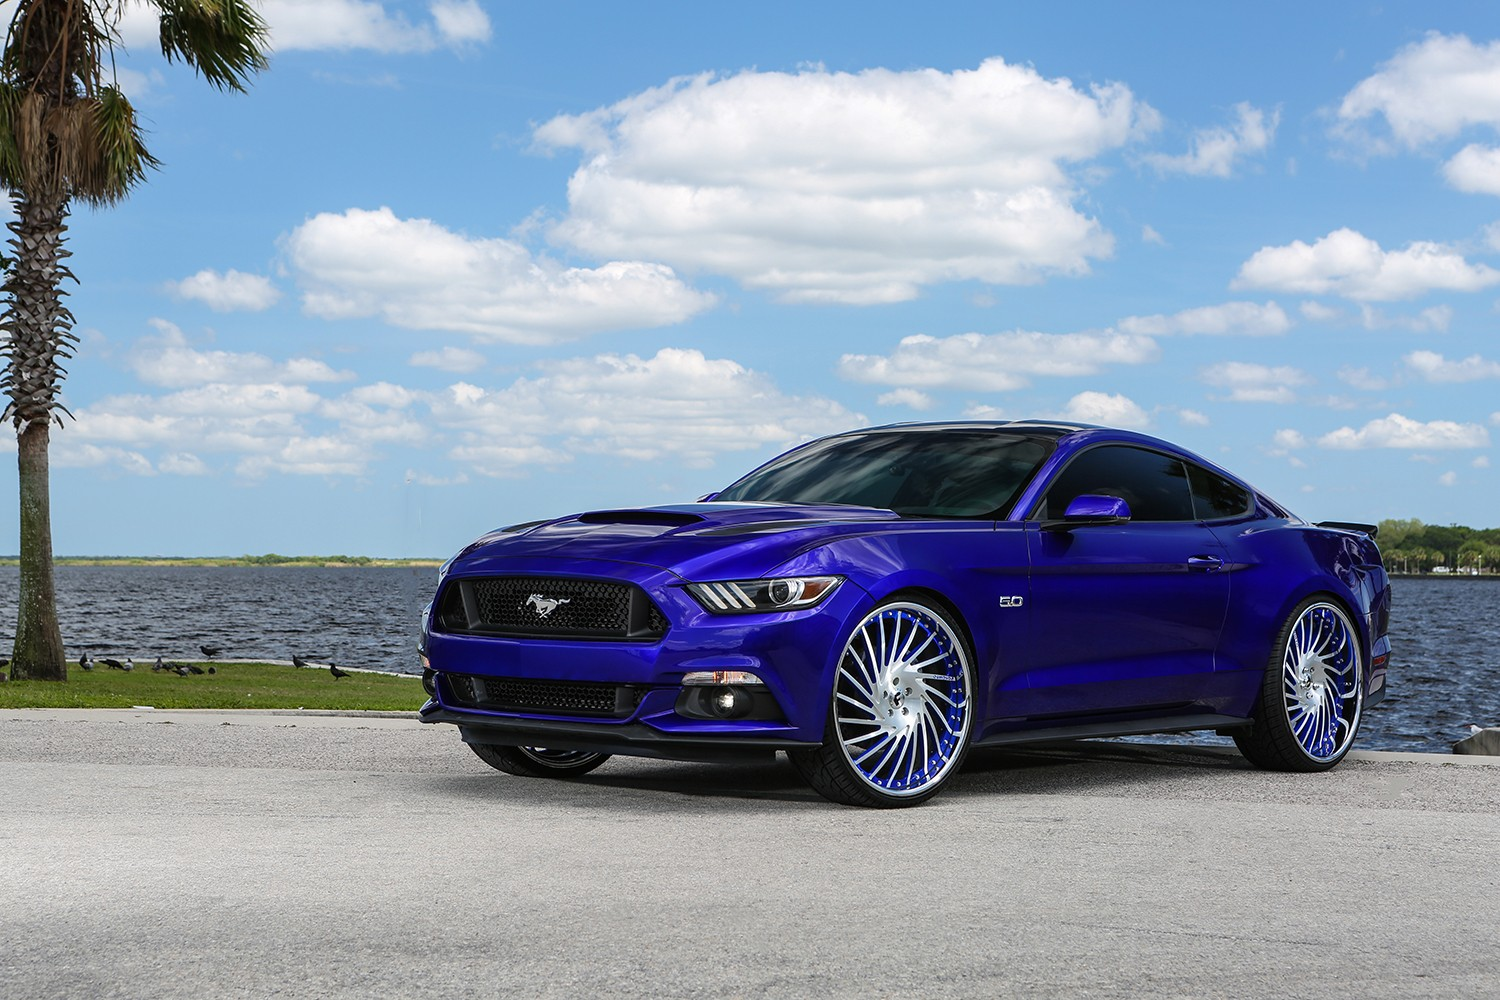 royal-pony-express-ford-mustang-by-forgiato-has-oversized-wheels_1